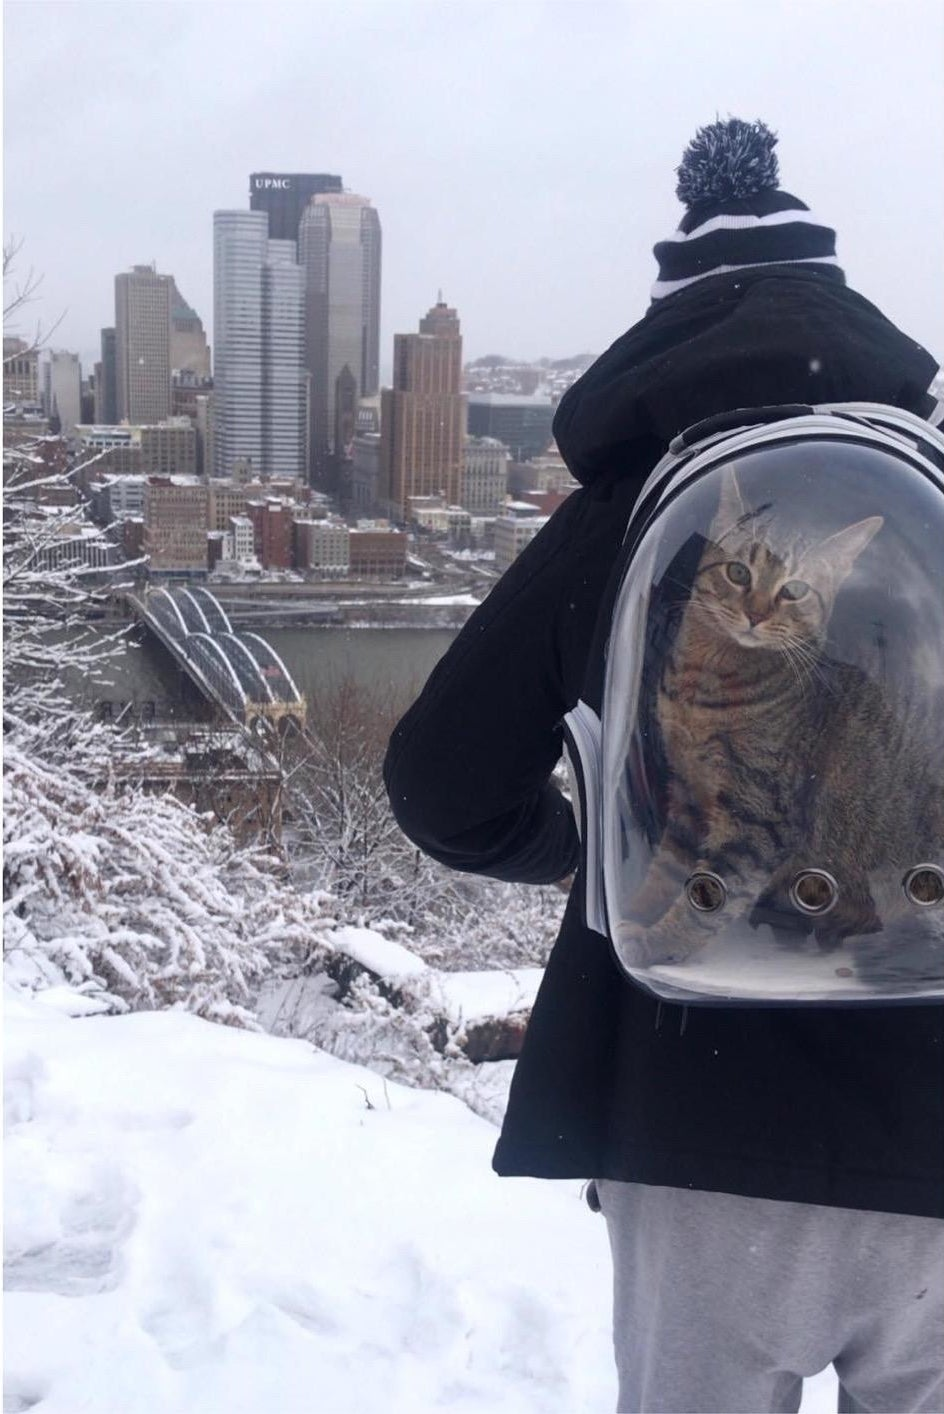 A person in the snow wearing the cat backpack